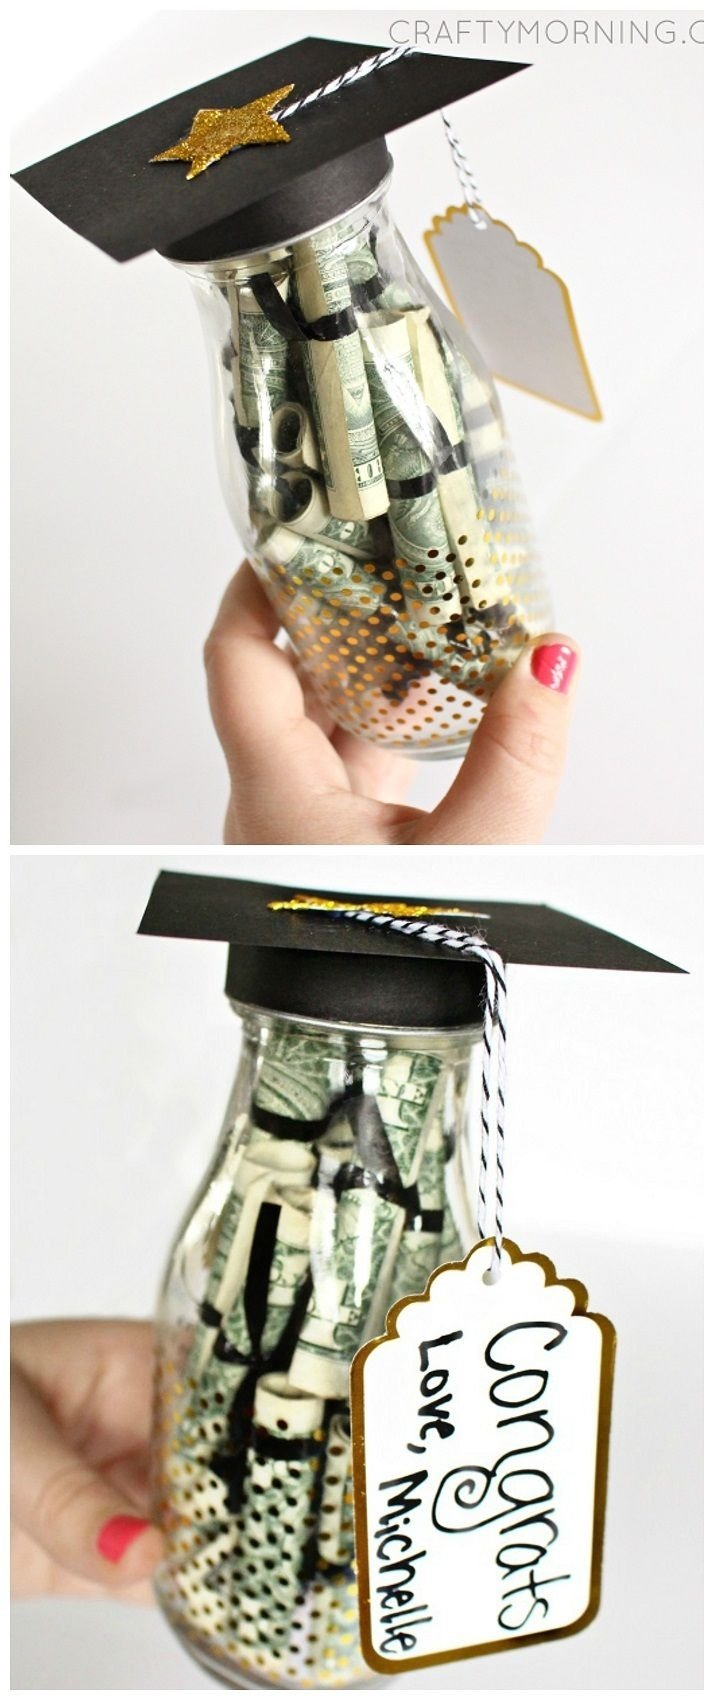 10 Trendy Graduation Gift Ideas For Friends graduation glass bottle gift dollar bill diplomas perfect for 3